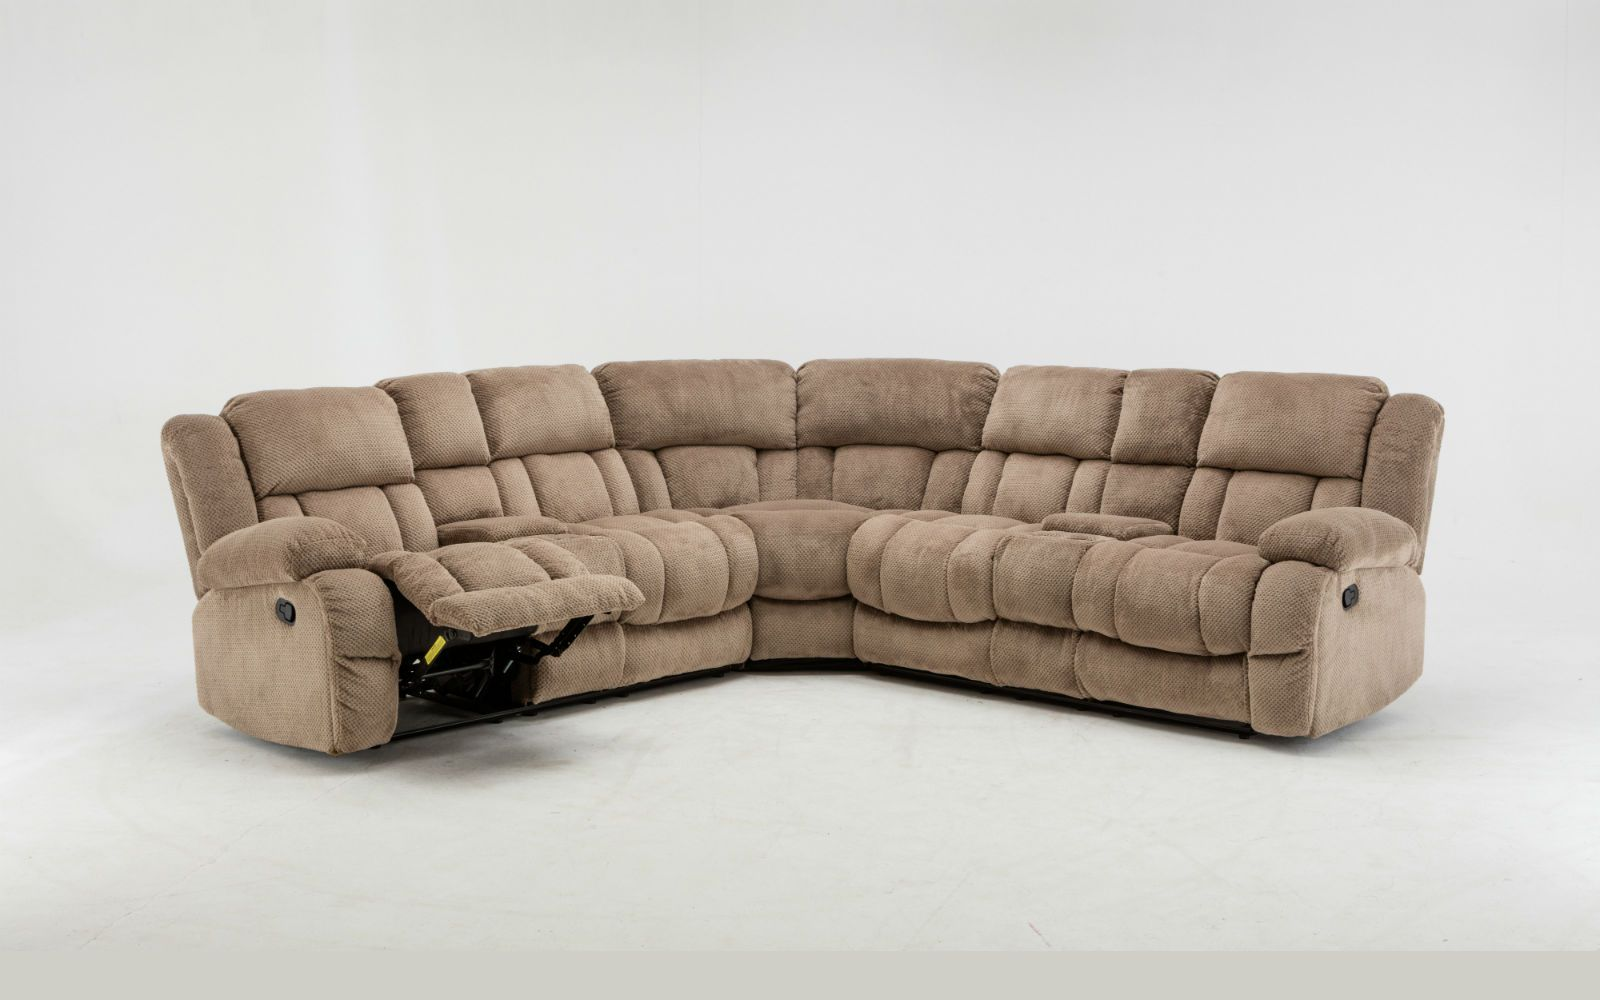 Linen Fabric L Shape Sectional Recliner Sofa Image